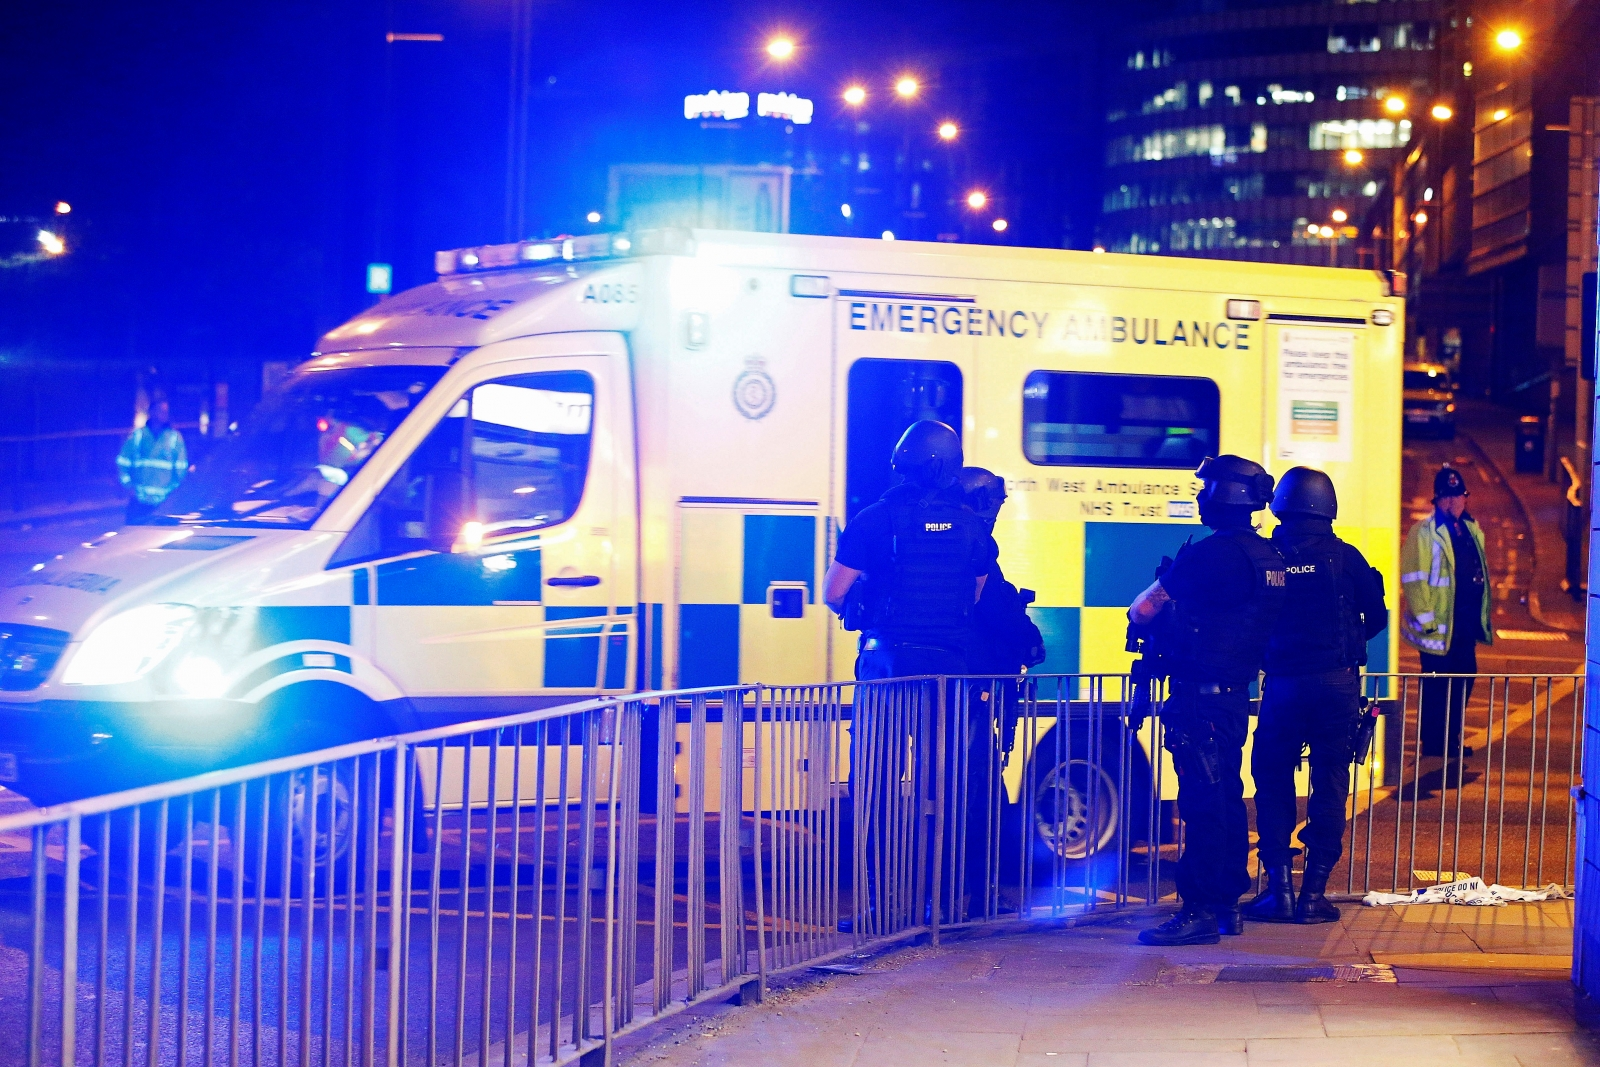 blast-at-ariana-grande-concert-in-england-kills-19-what-we-know-so-far